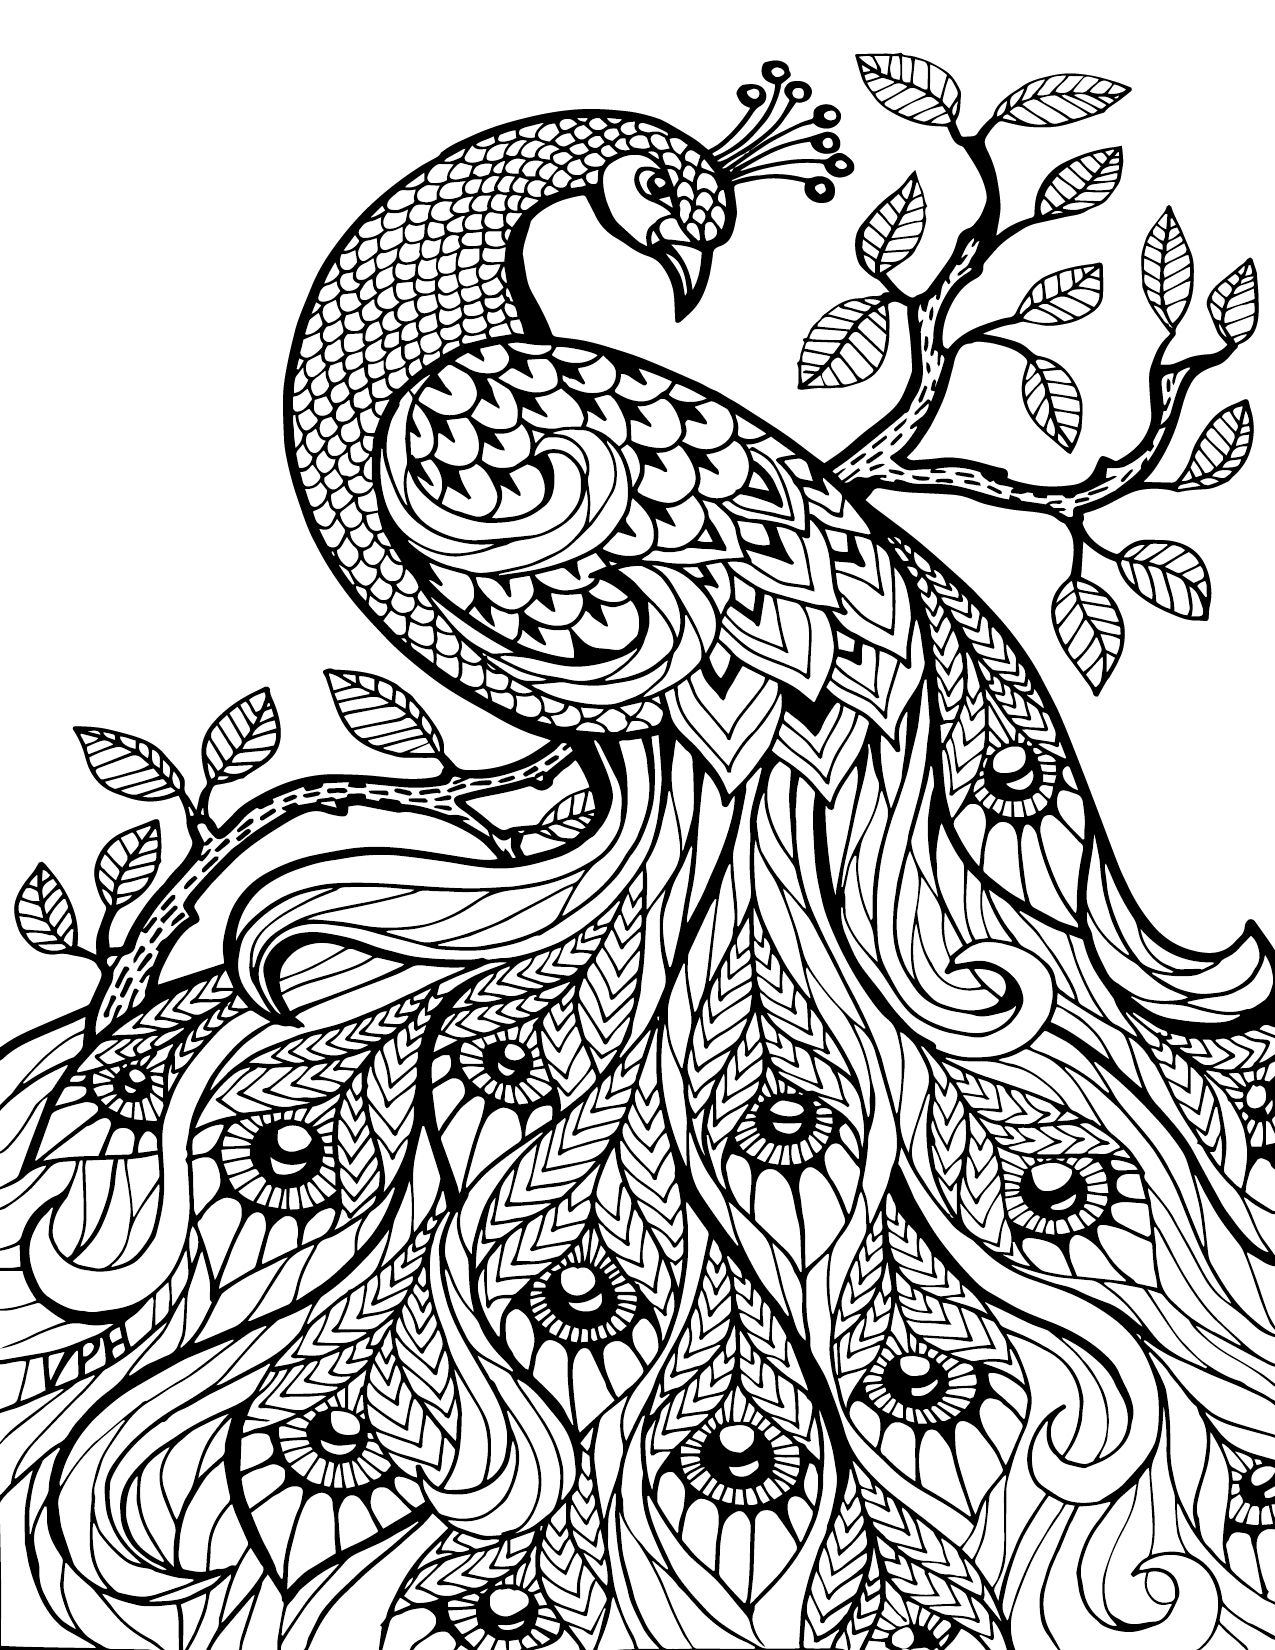 intricate coloring pages intricate coloring pages for adults free printable intricate pages coloring